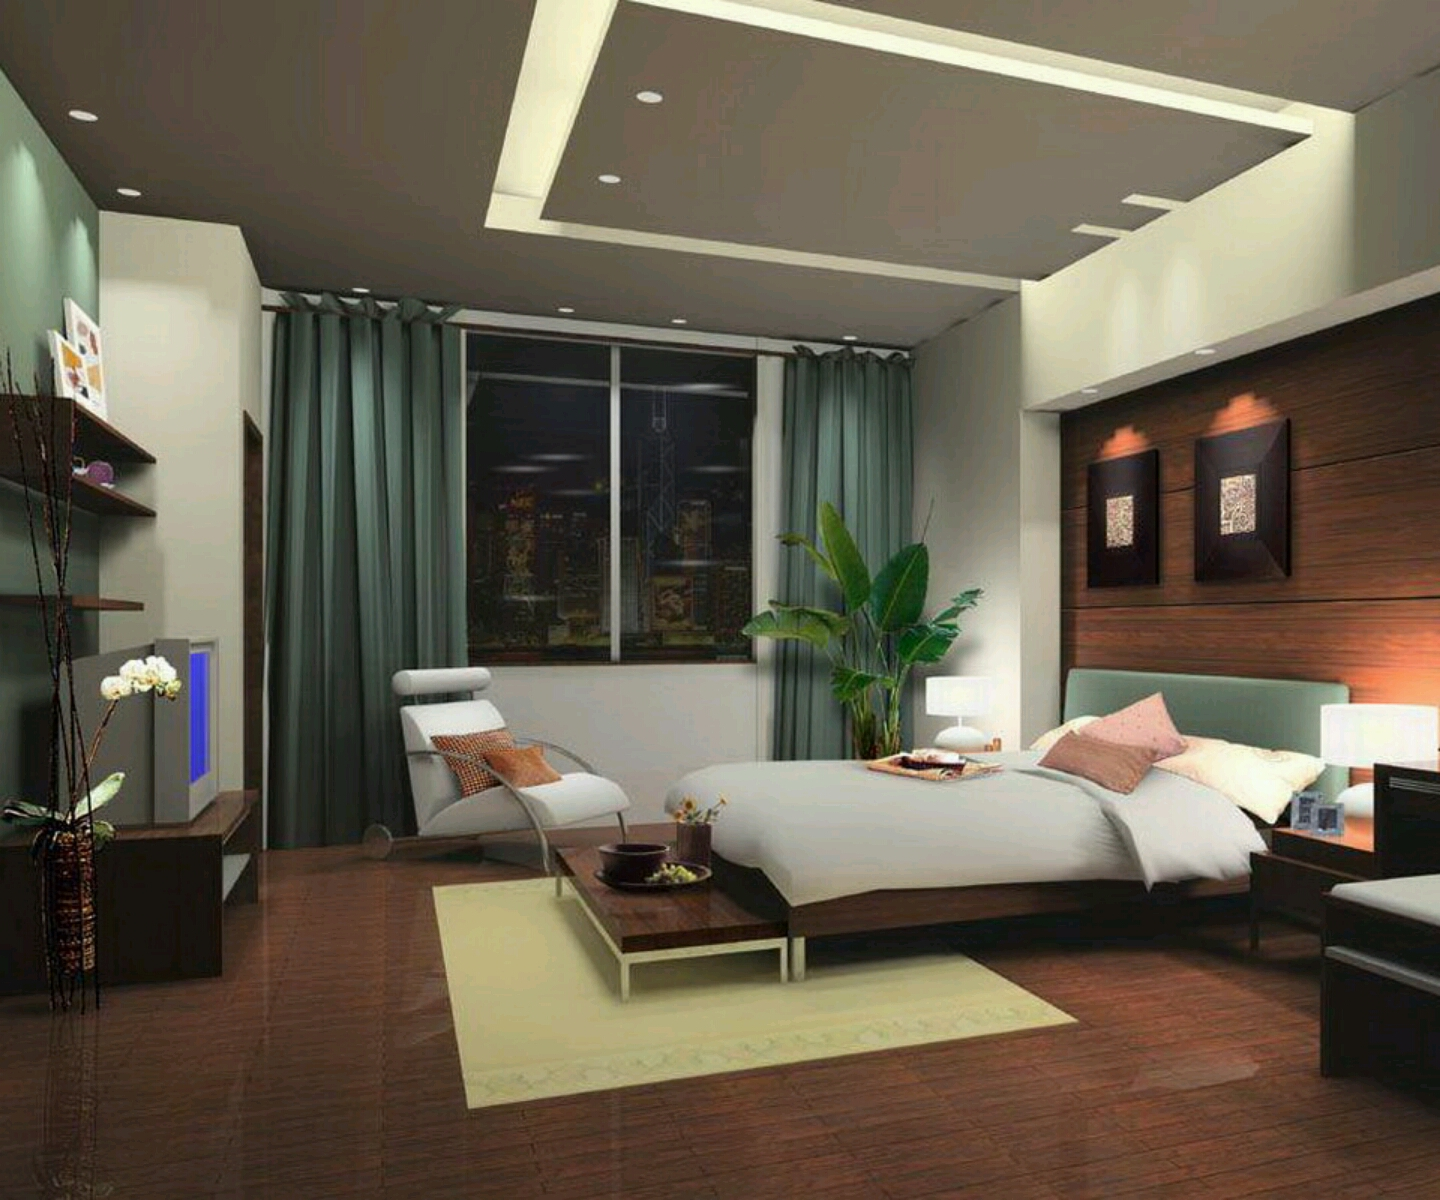 New home designs latest modern bedrooms designs best ideas for New house bedroom ideas